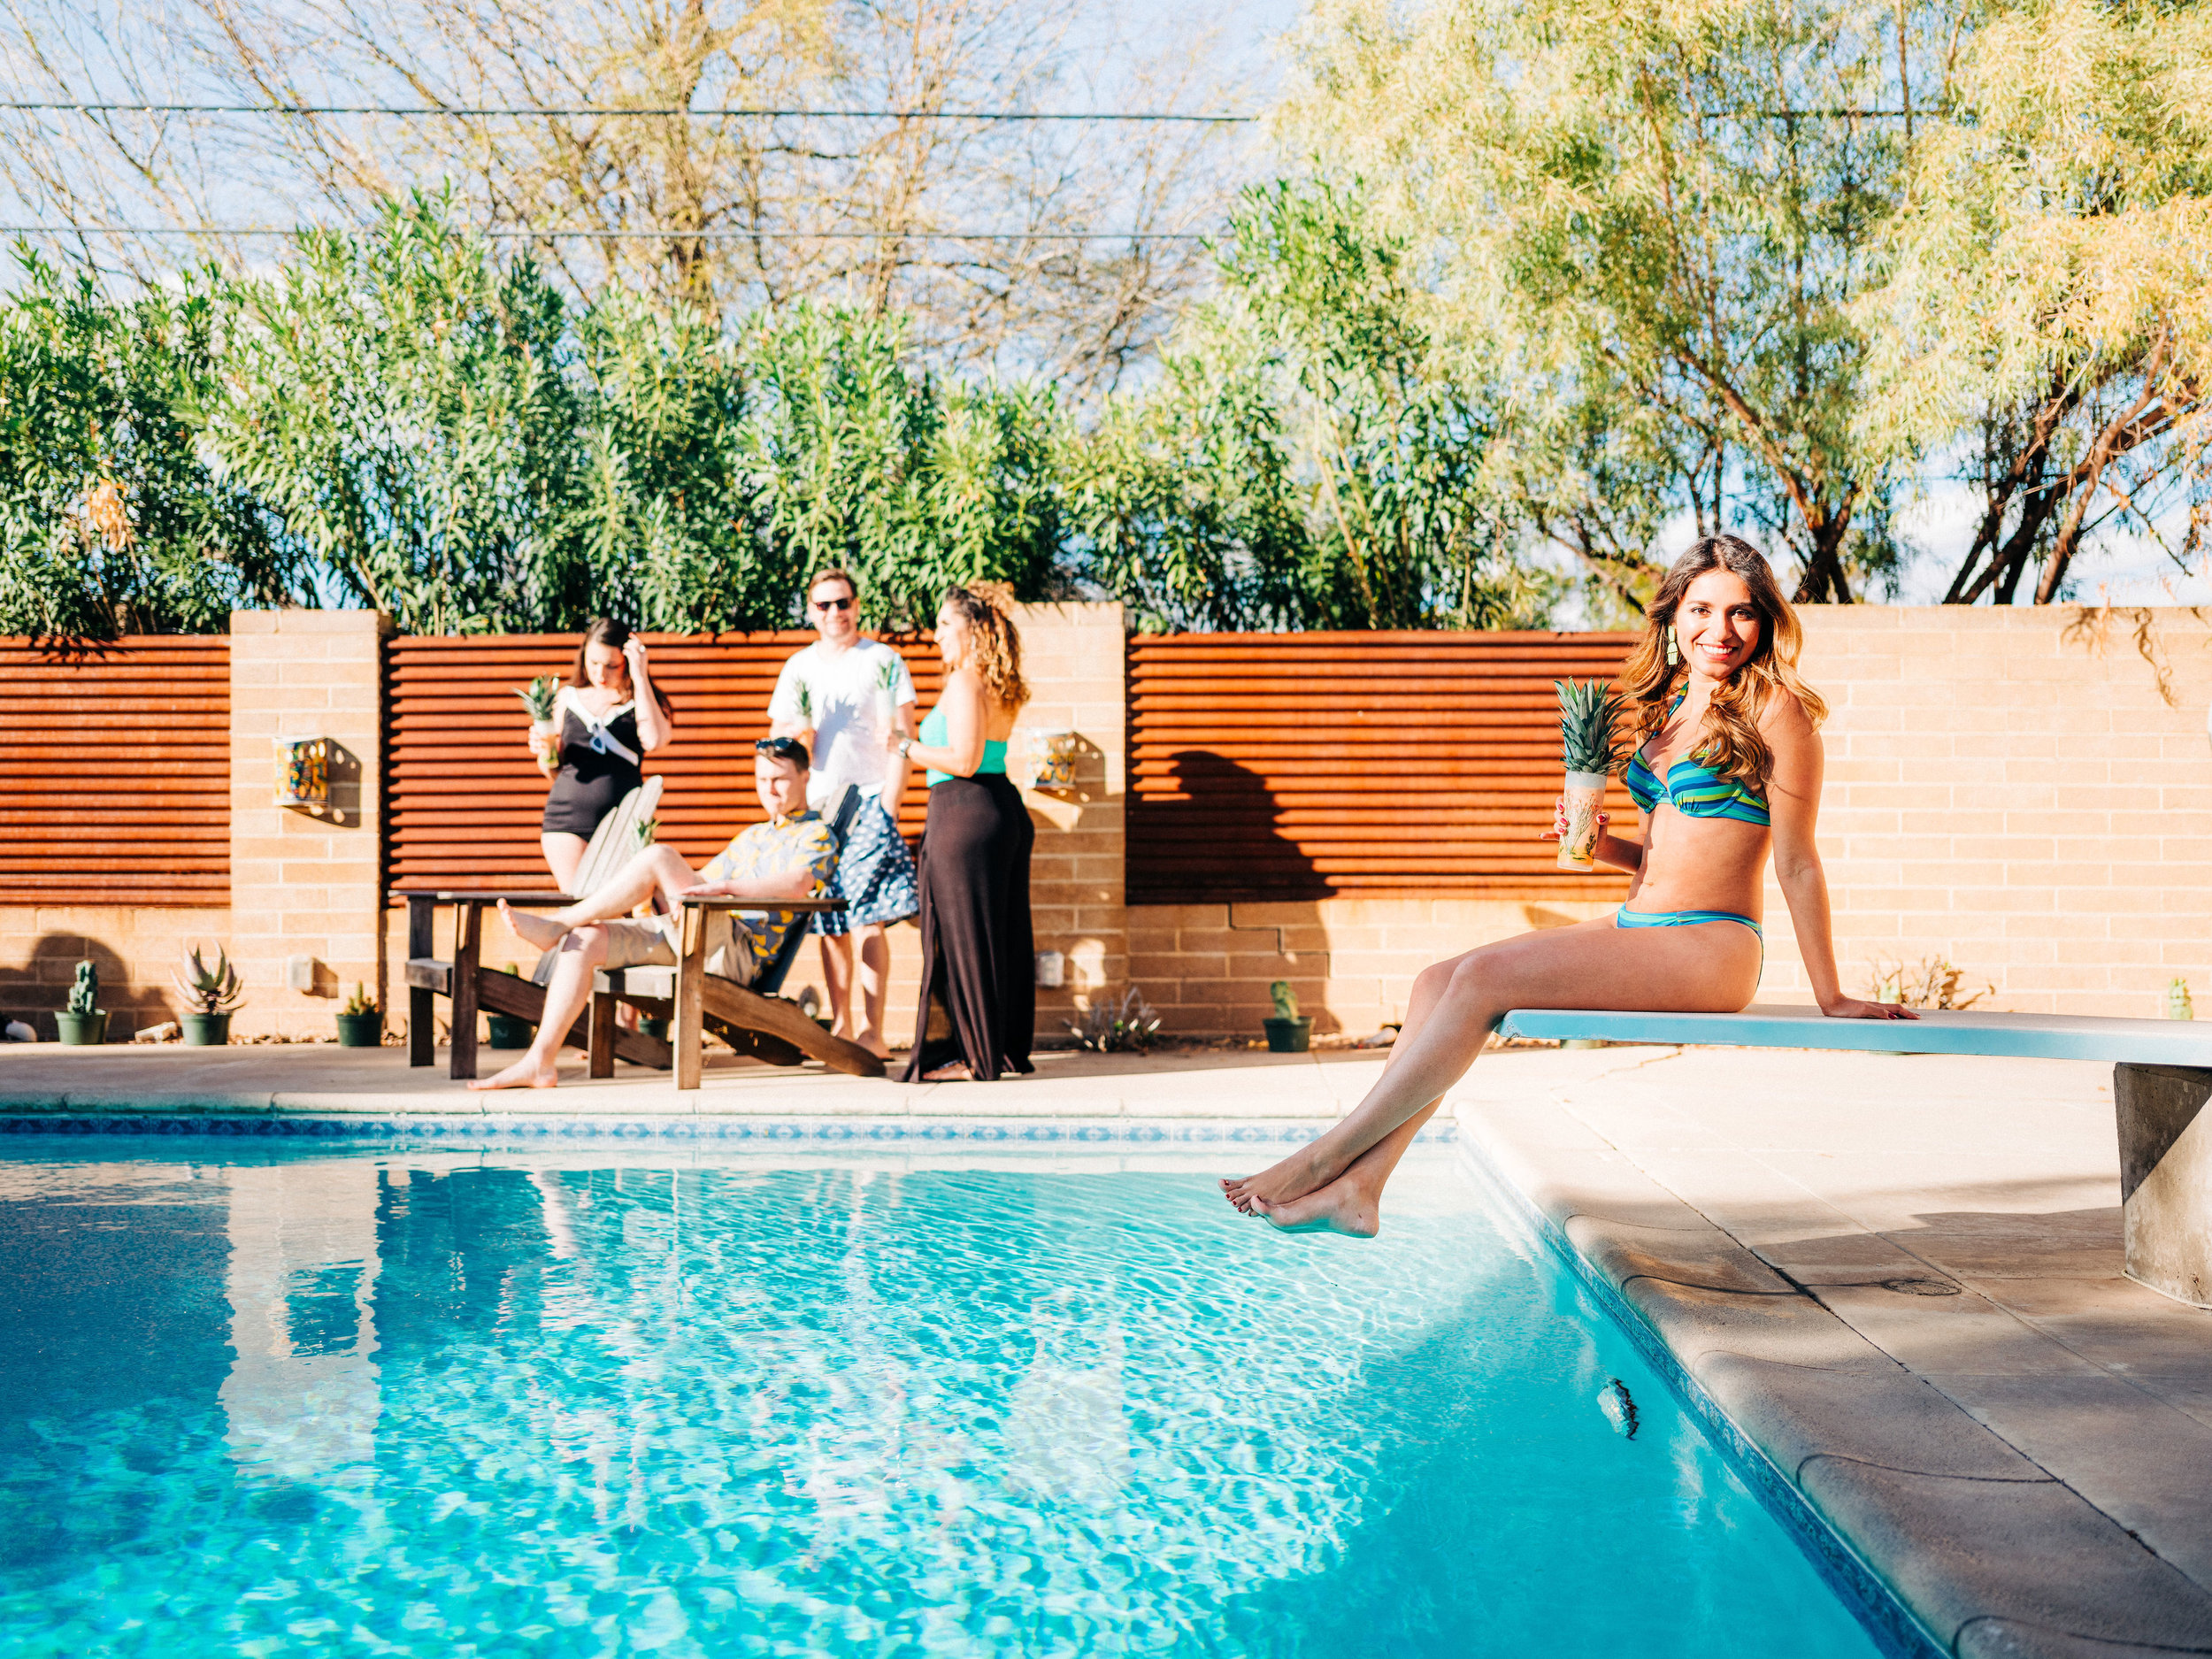 Andy-Shepard-Photography-Tucson-Pool-Party-51.jpg